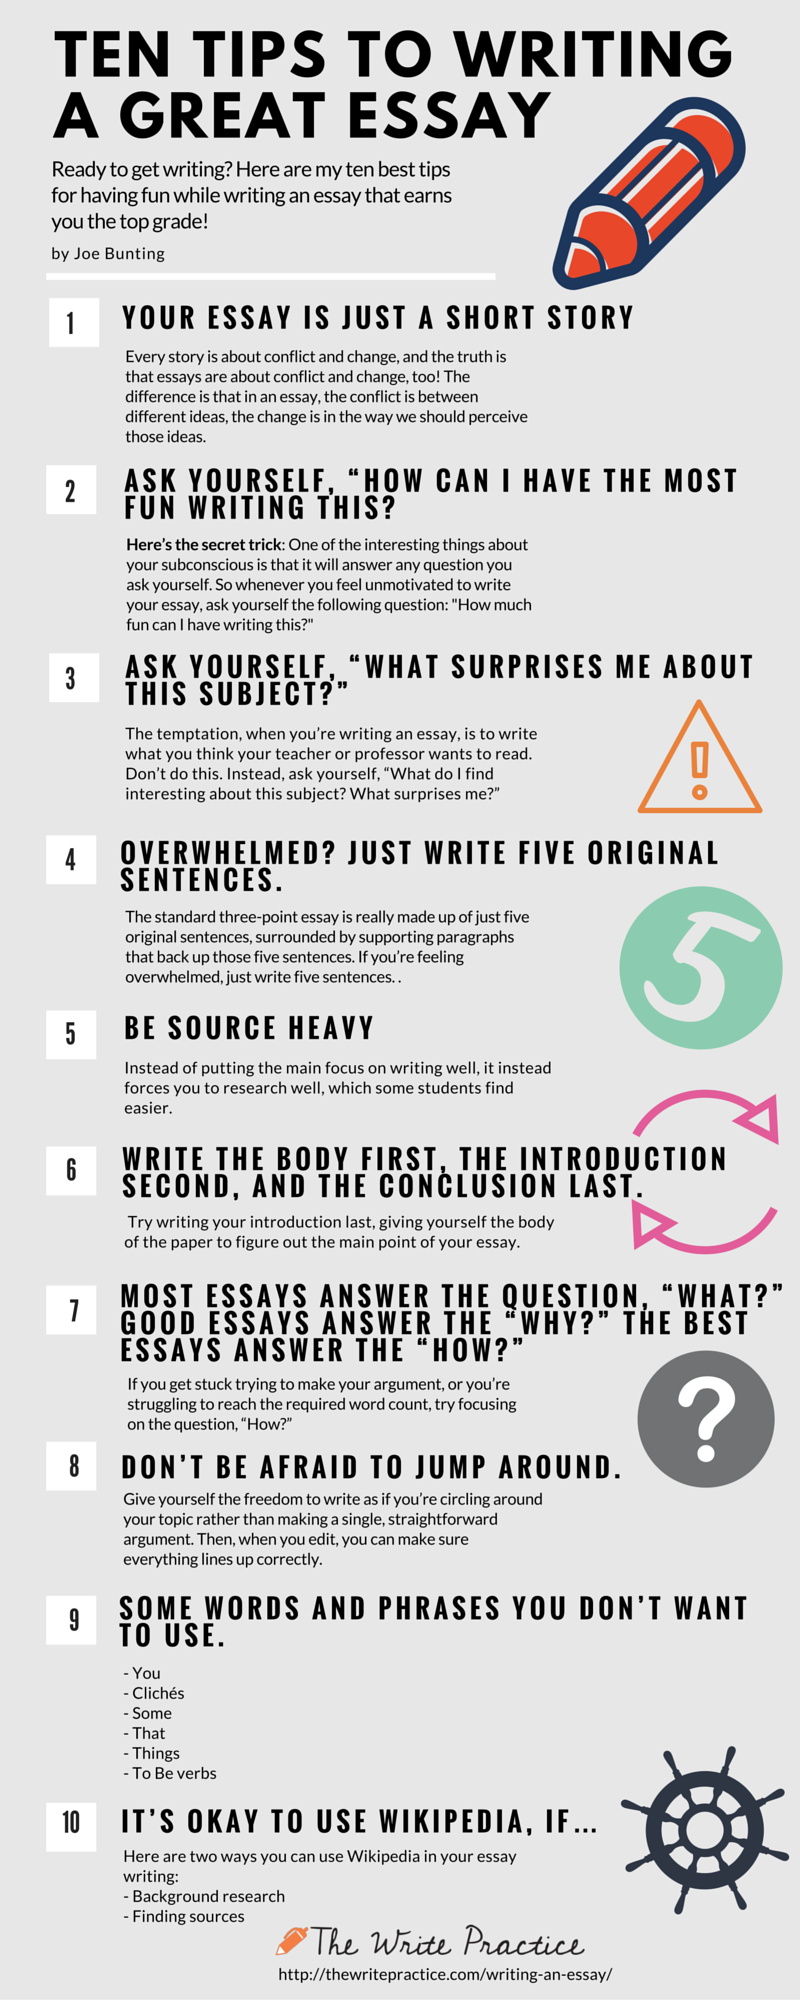 003 Tips For Writing An Essay1 How To Write Better Essay Phenomenal A Good Narrative Pdf Question Full